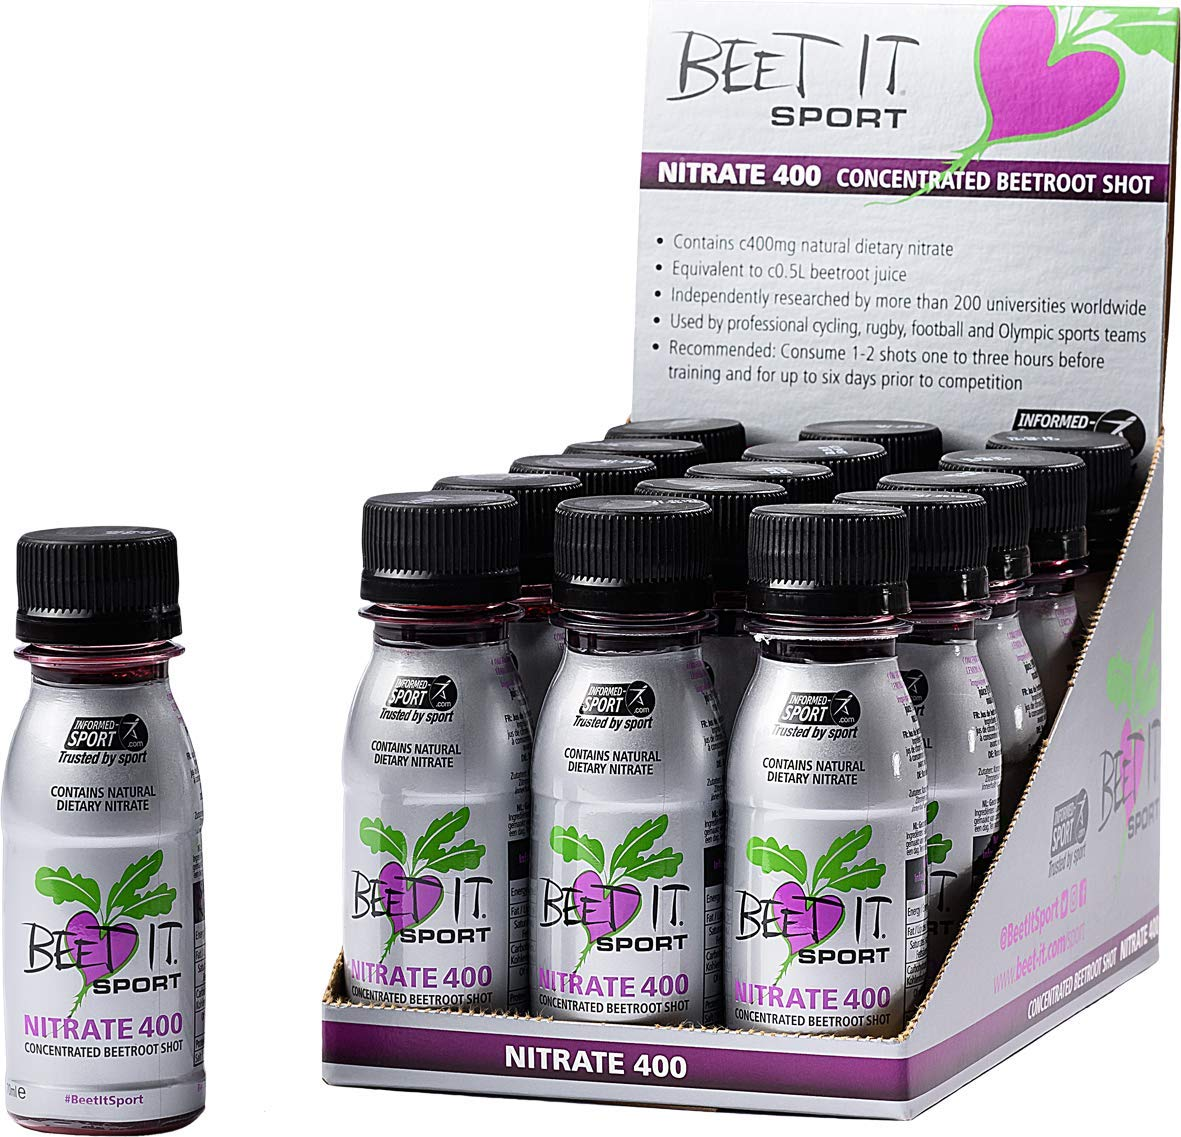 Beet It Sport Pro-Elite Shot, 2.4 Fluid Ounce, 15 Count by BEET IT